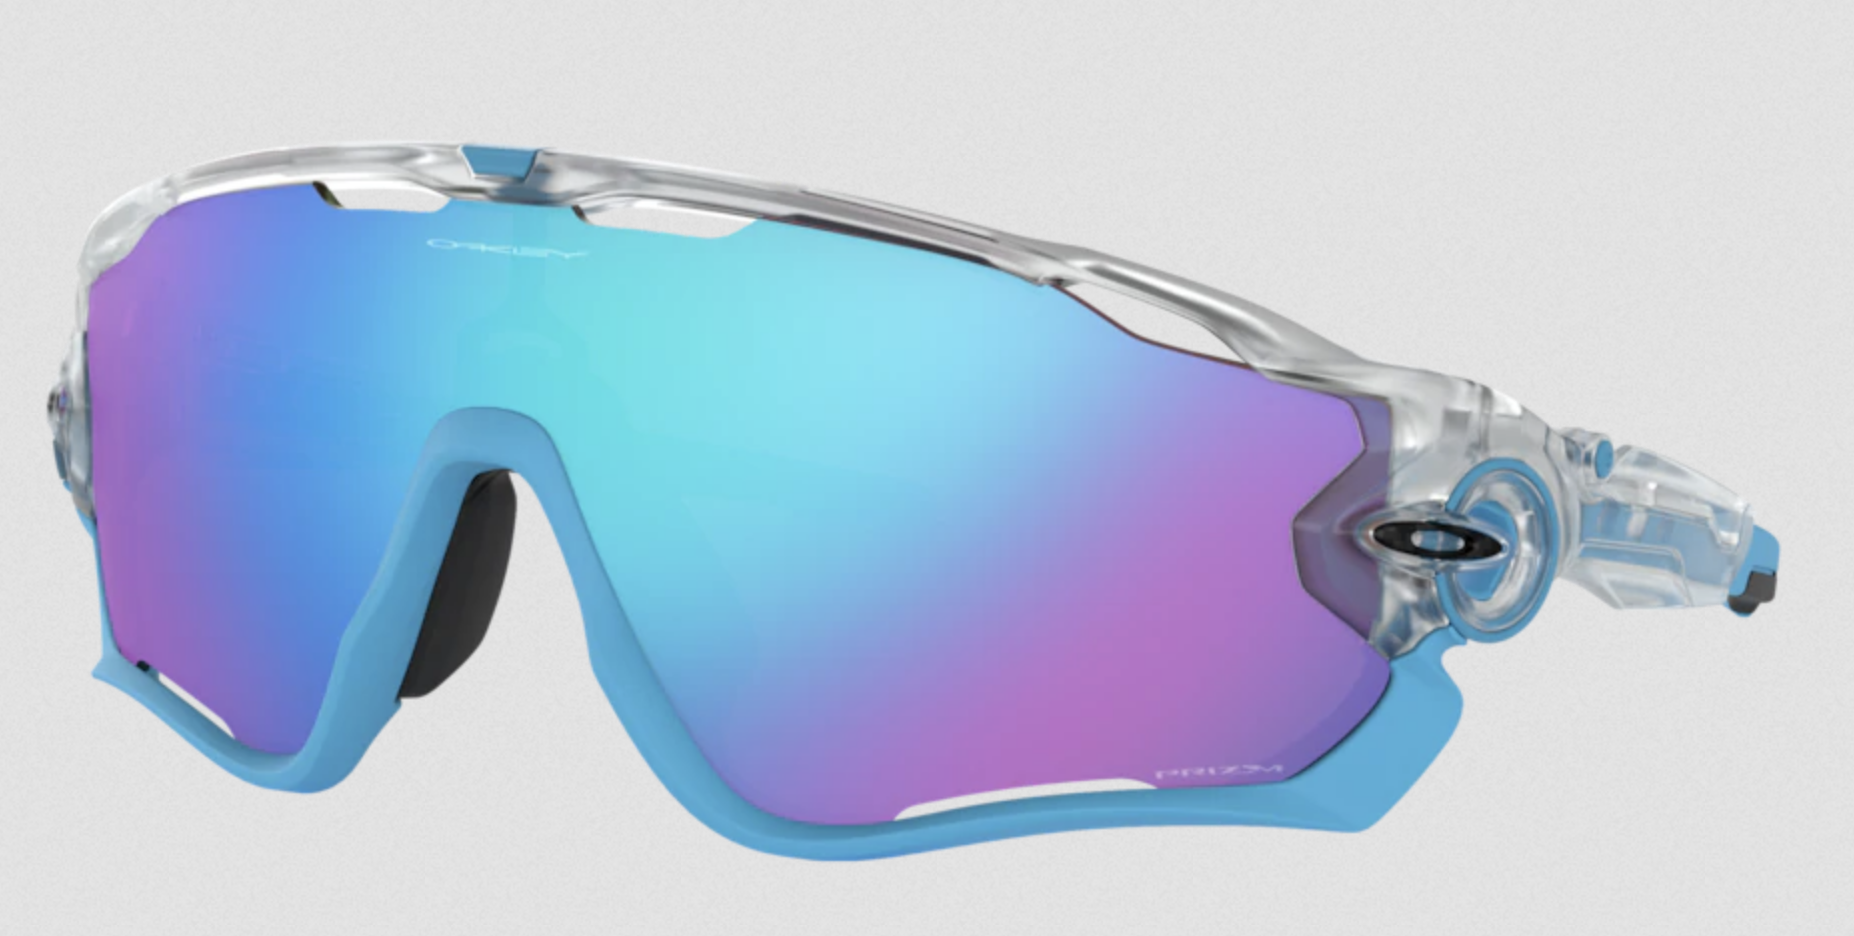 Oakley Jawbreaker™ Origins Collection cykelbriller - Polished white-prizm ruby | cykelbrille